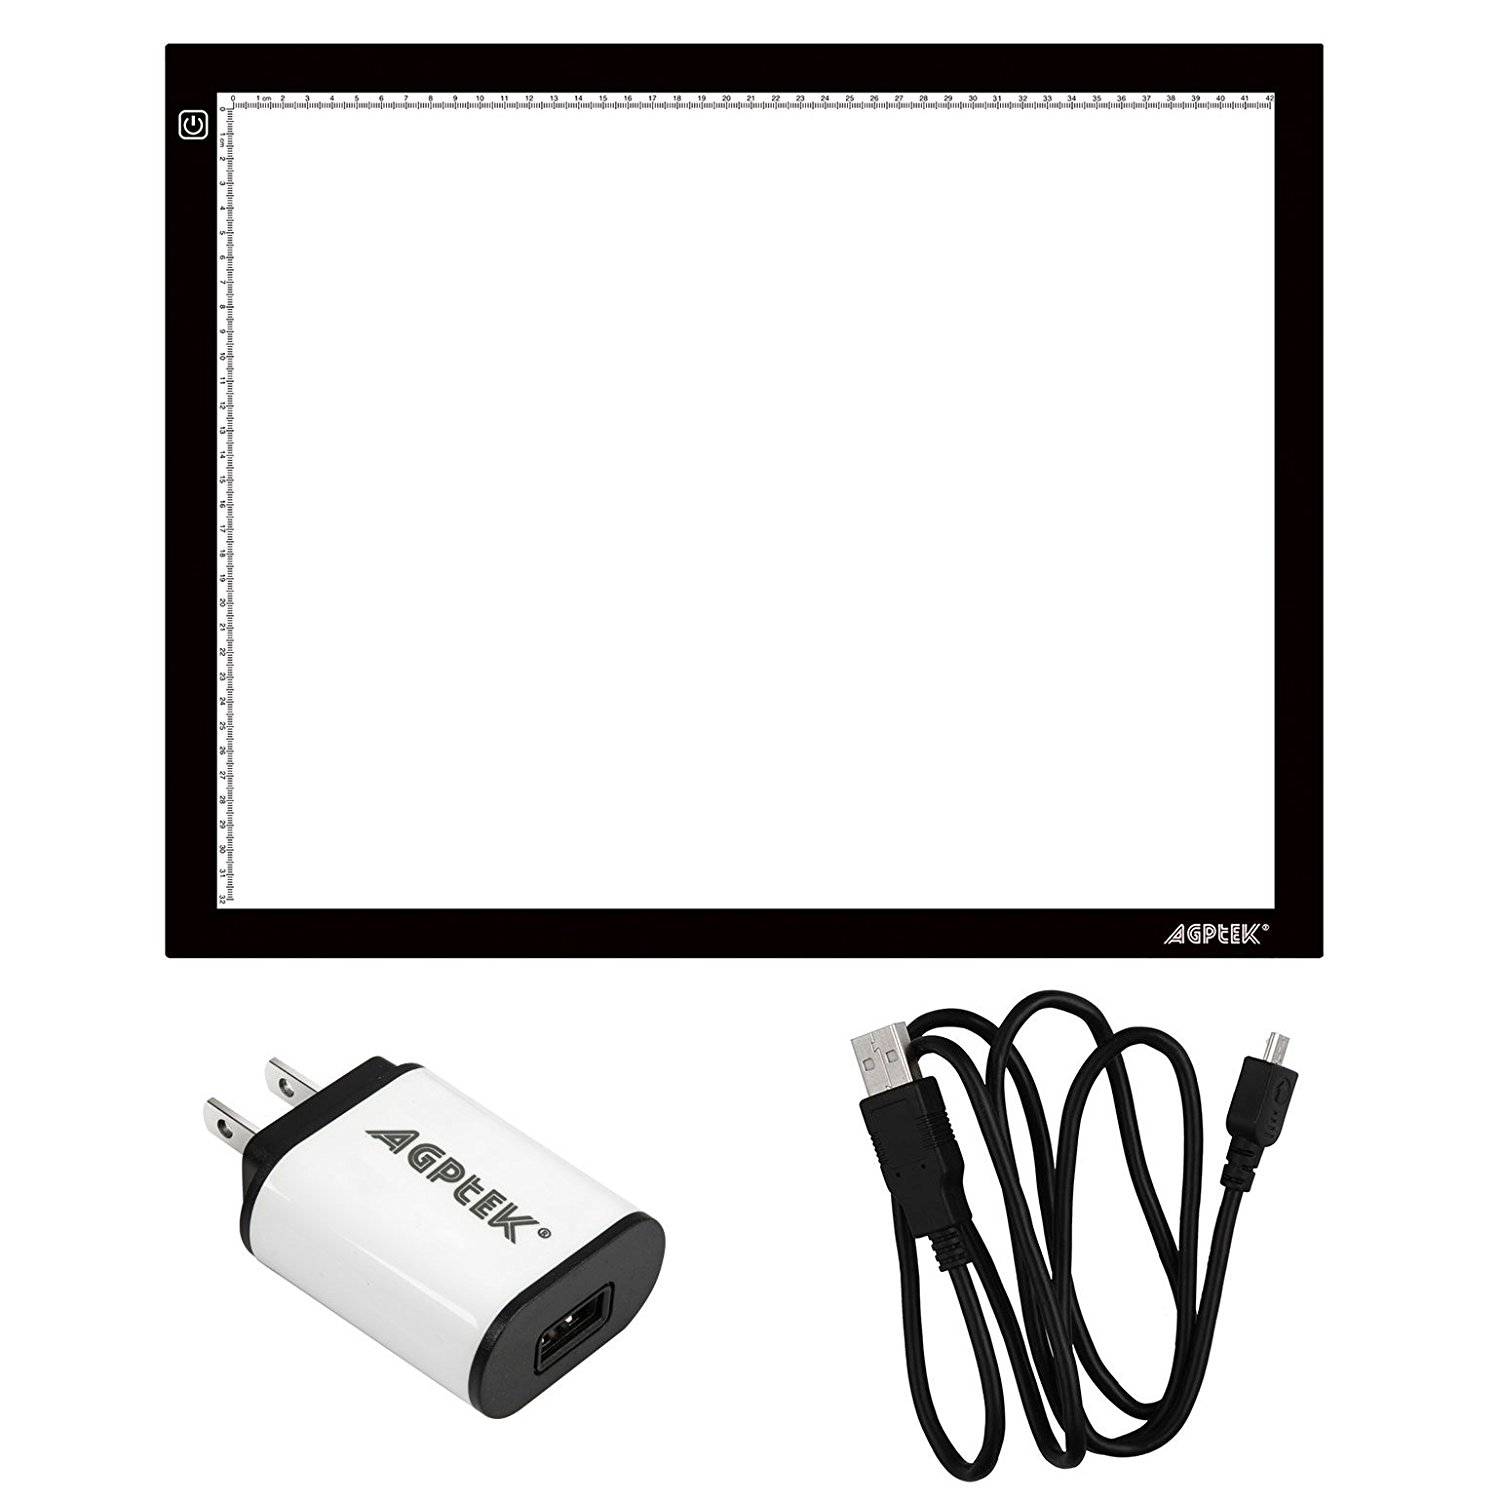 A3 Light Box, AGPtek 14.6X18.5 Inch LED Artcraft Tracing Light Pad A3 Light Box Ultra-thin USB Power Cable Dimmable Brightness Tatoo Pad Aniamtion, Sketching, Designing, Stencilling